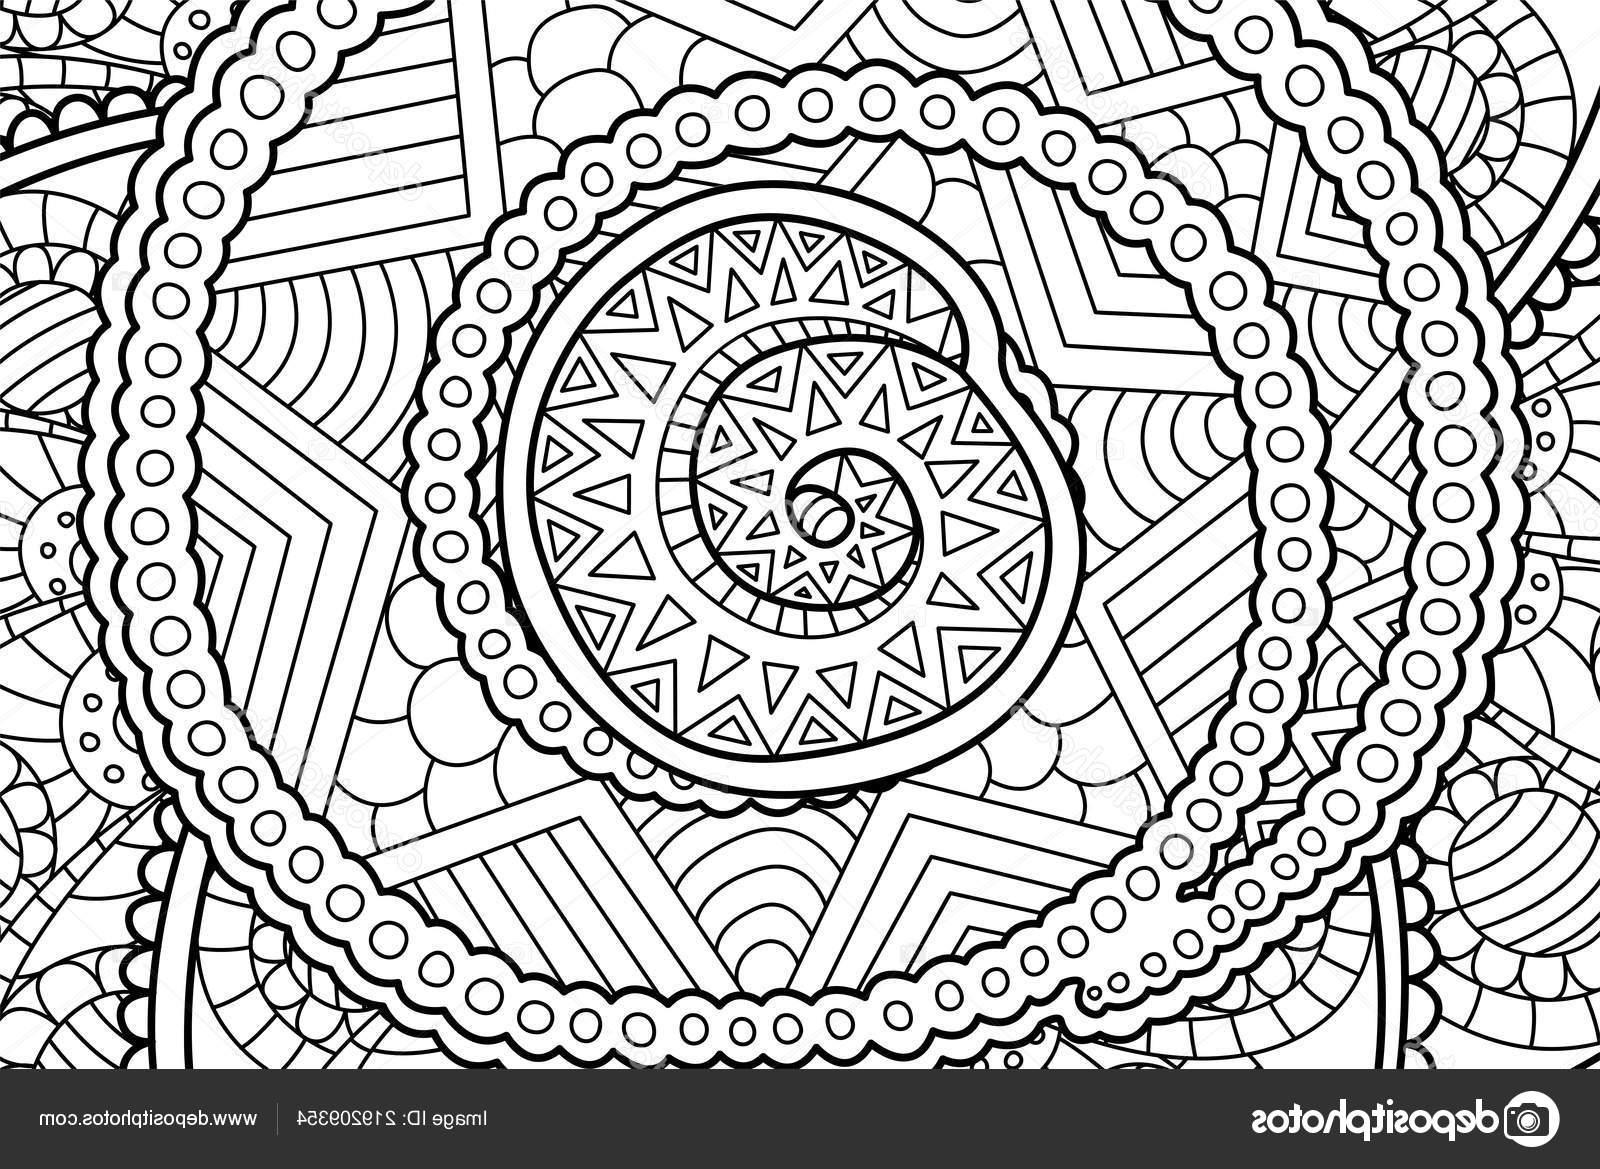 spiral pictures to color golden ratio spiral geometry coloring pages shape to pictures spiral color